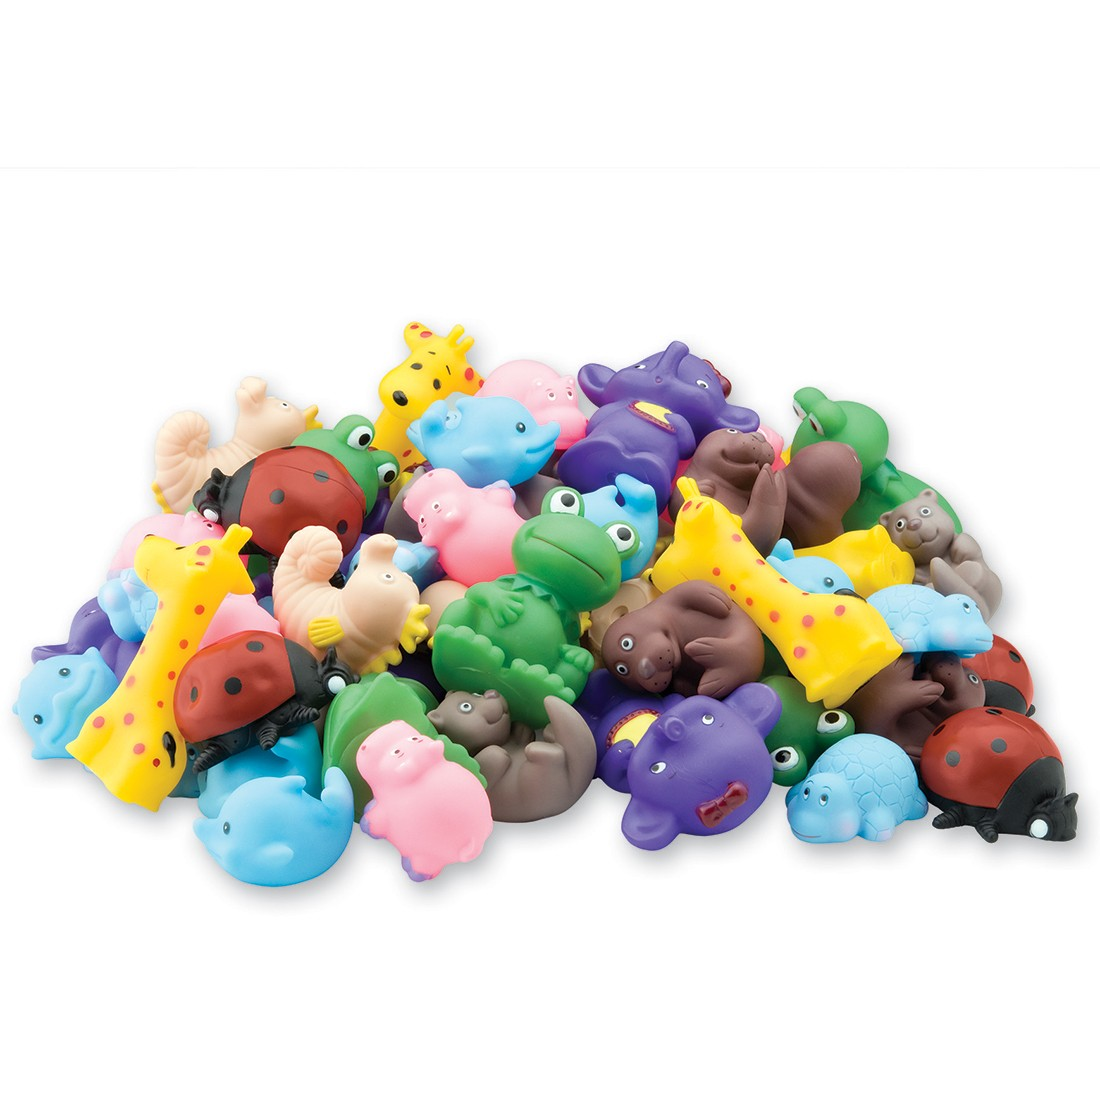 Squeeze Toy Value Pack [image]